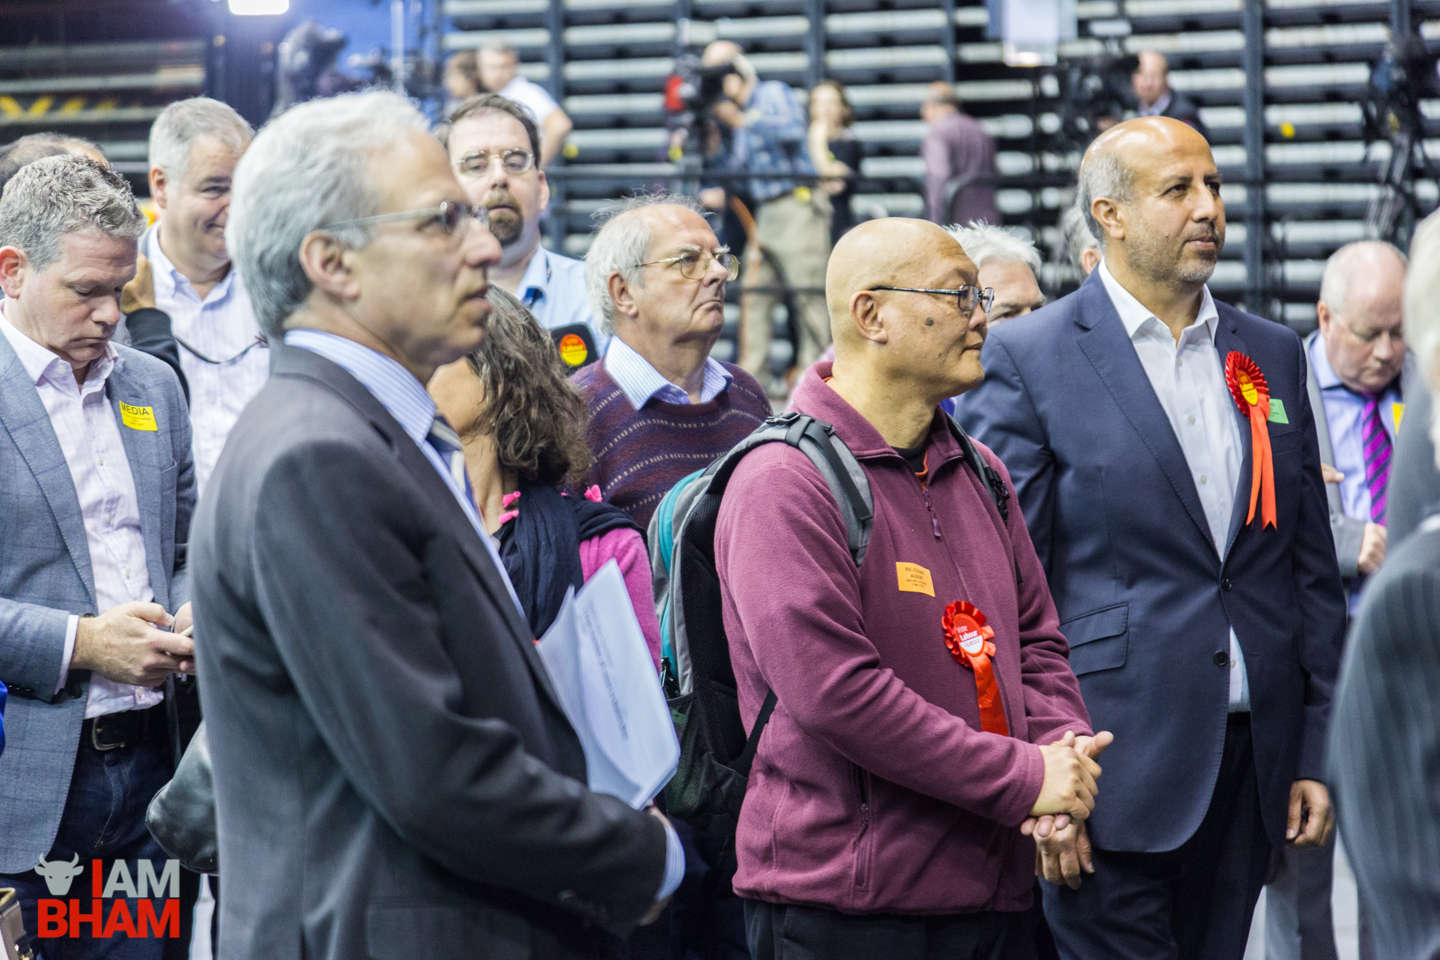 Politicians and supporters gather for West Midlands Mayoral Election announcements at the Barclaycard Arena in Birmingham